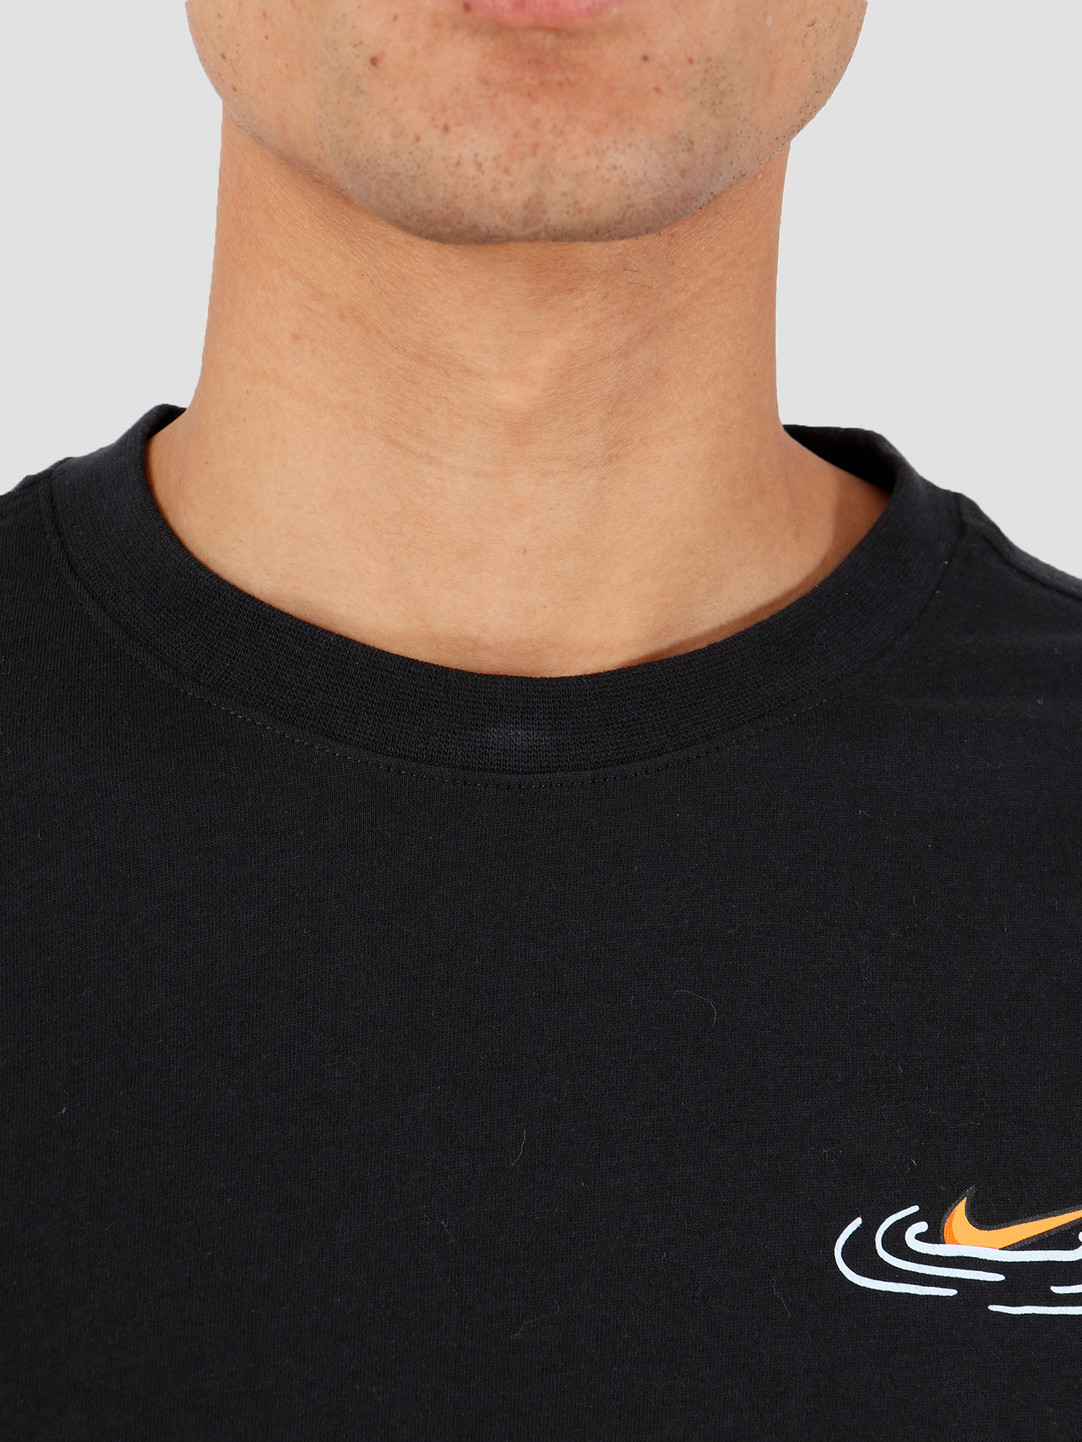 Nike Nike SB T-Shirt Black Cj0446-010